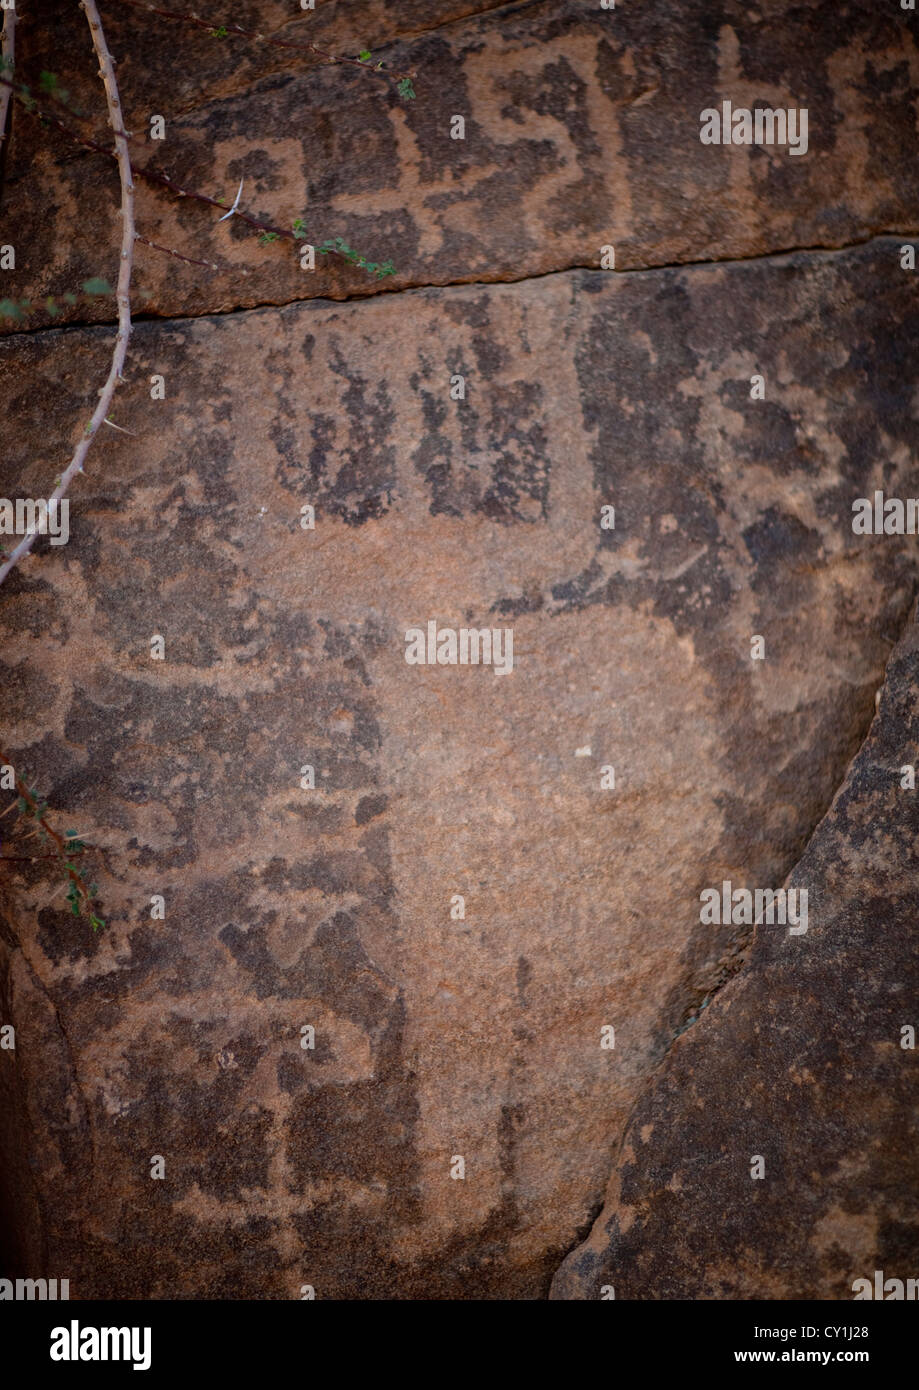 Rock carving in abar himma near najran saudi arabia